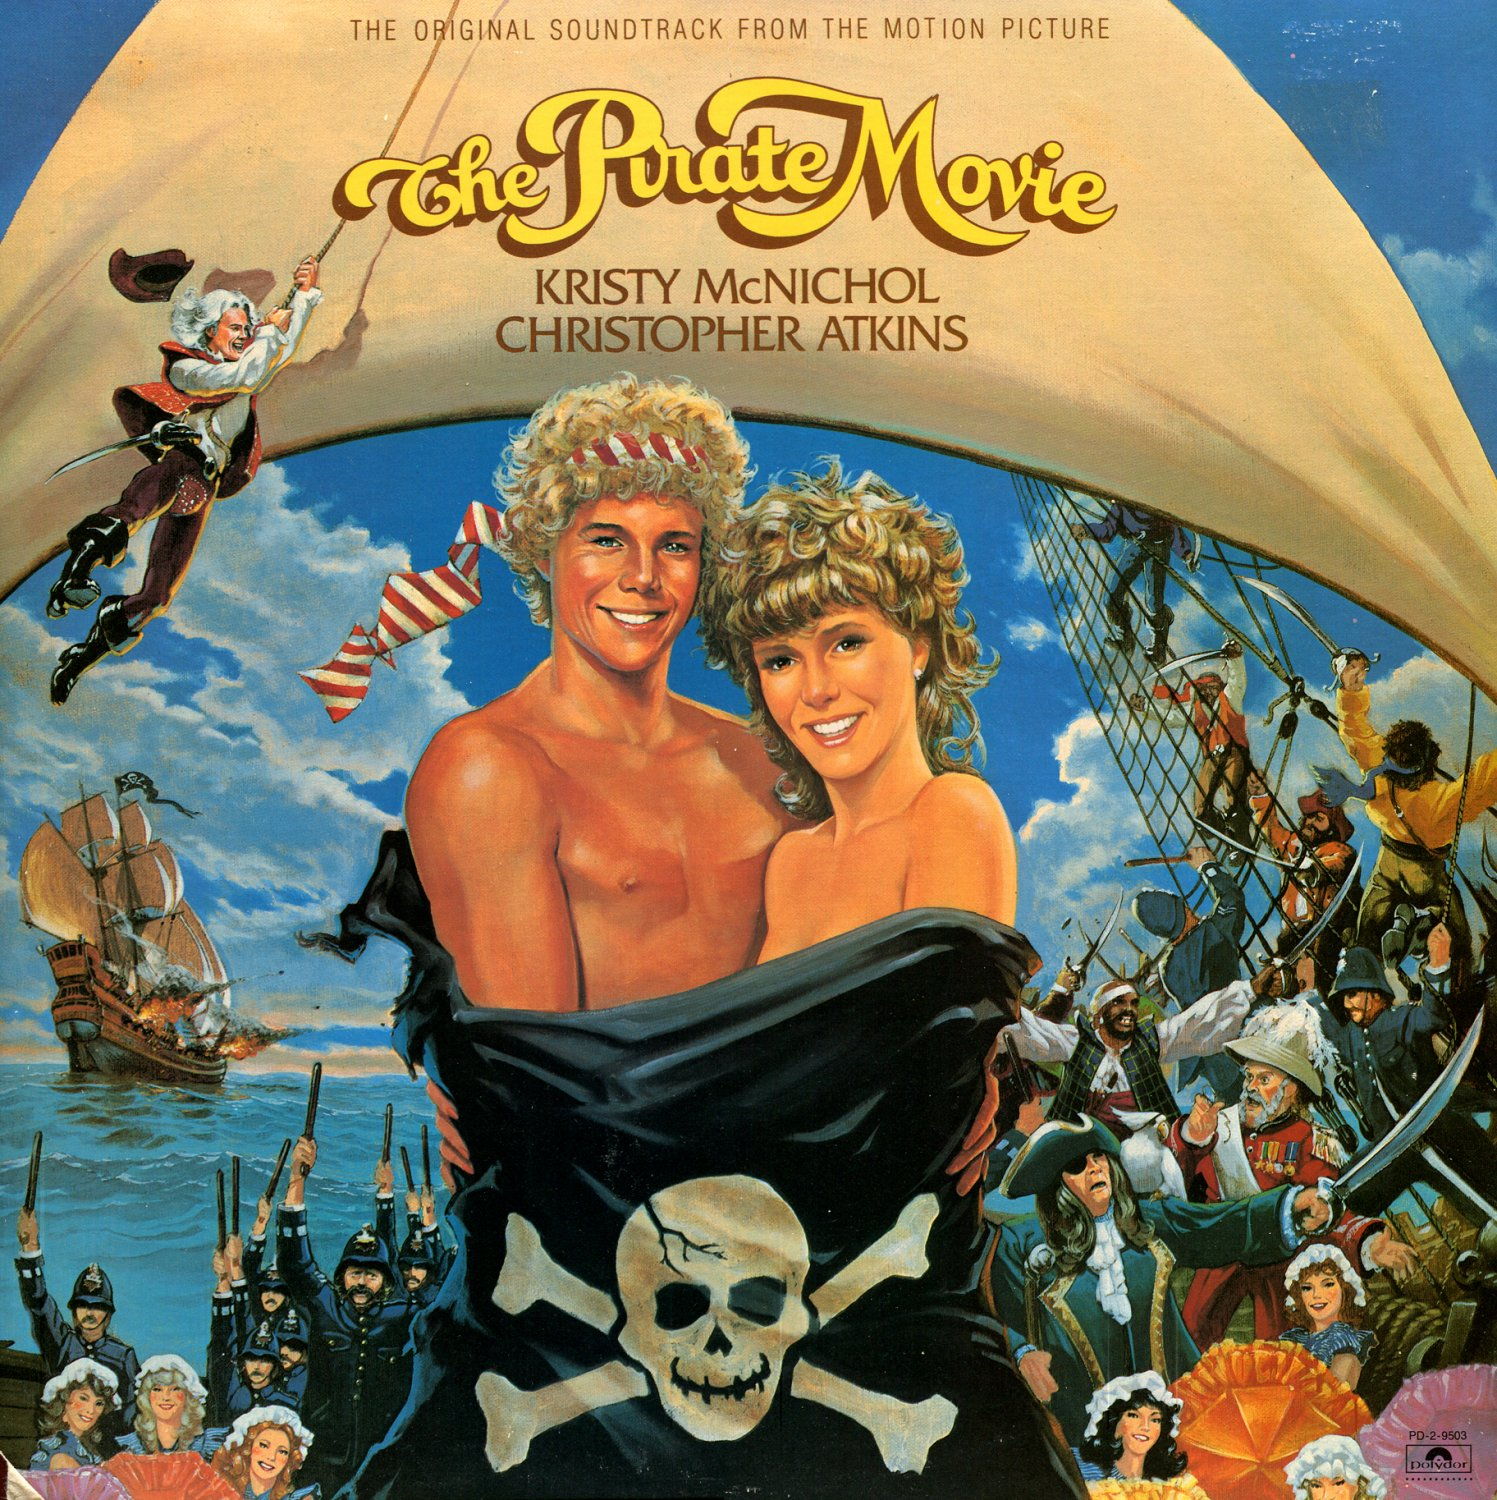 The Pirate Movie - Original Soundtrack, Kristy McNichol & Christopher Atkins OST LP/CD